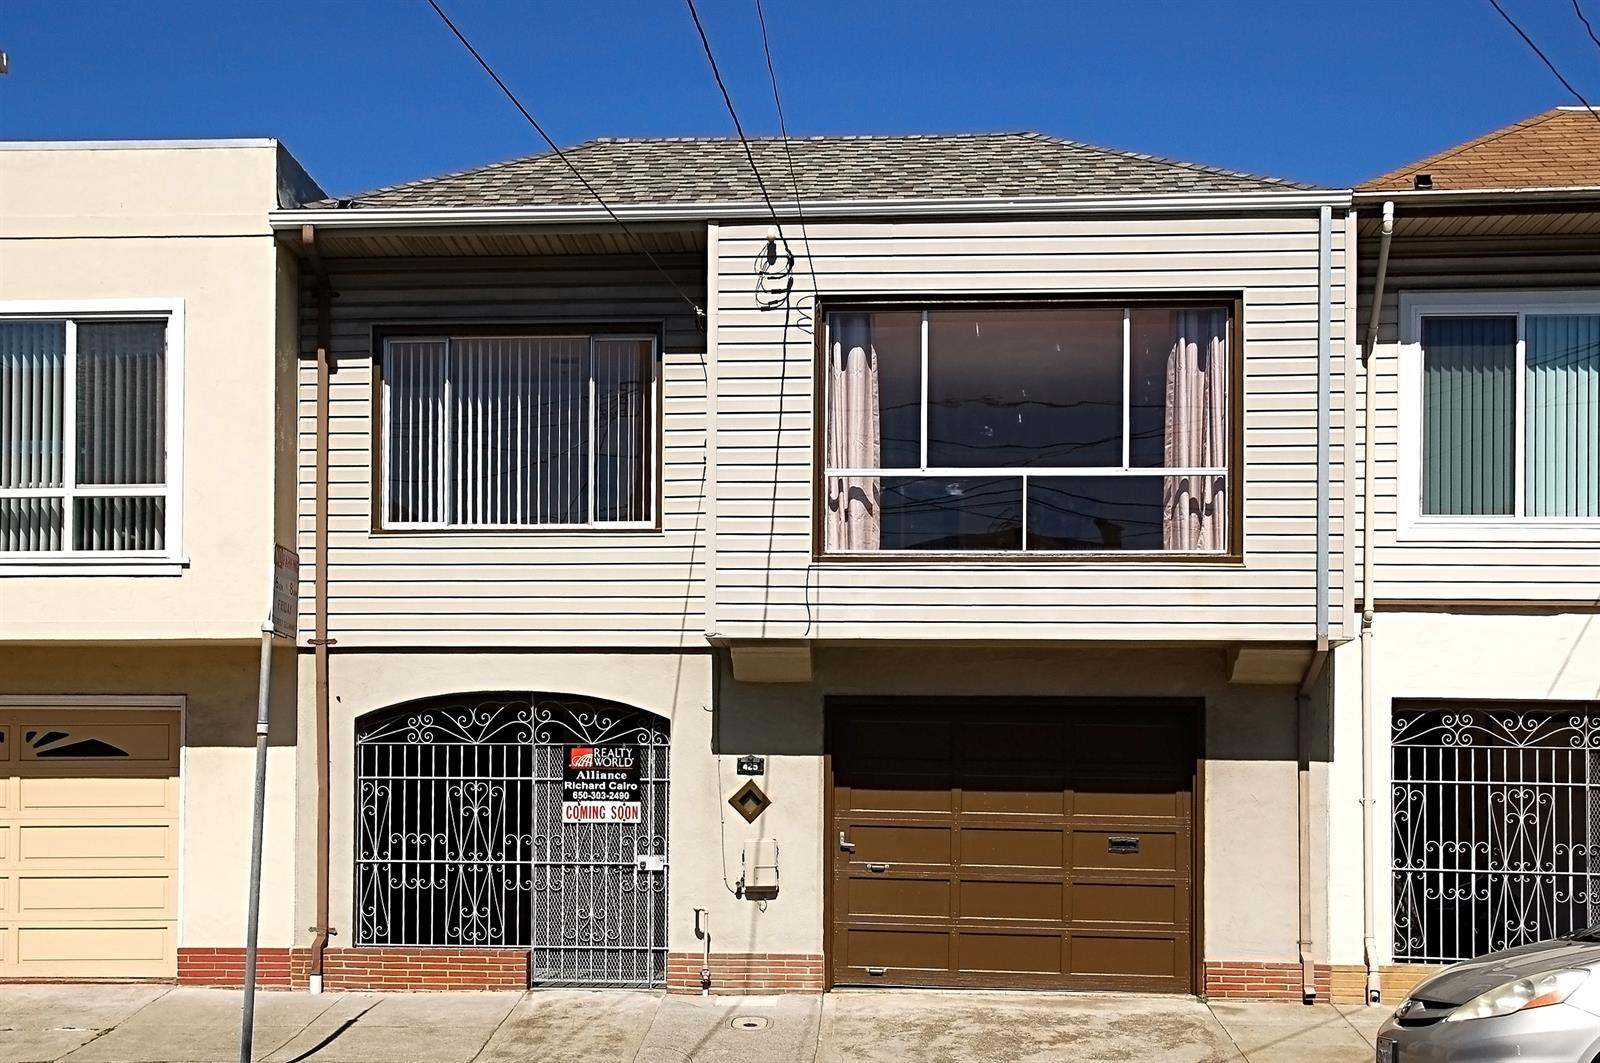 425 Castle St, Daly City, CA 94014